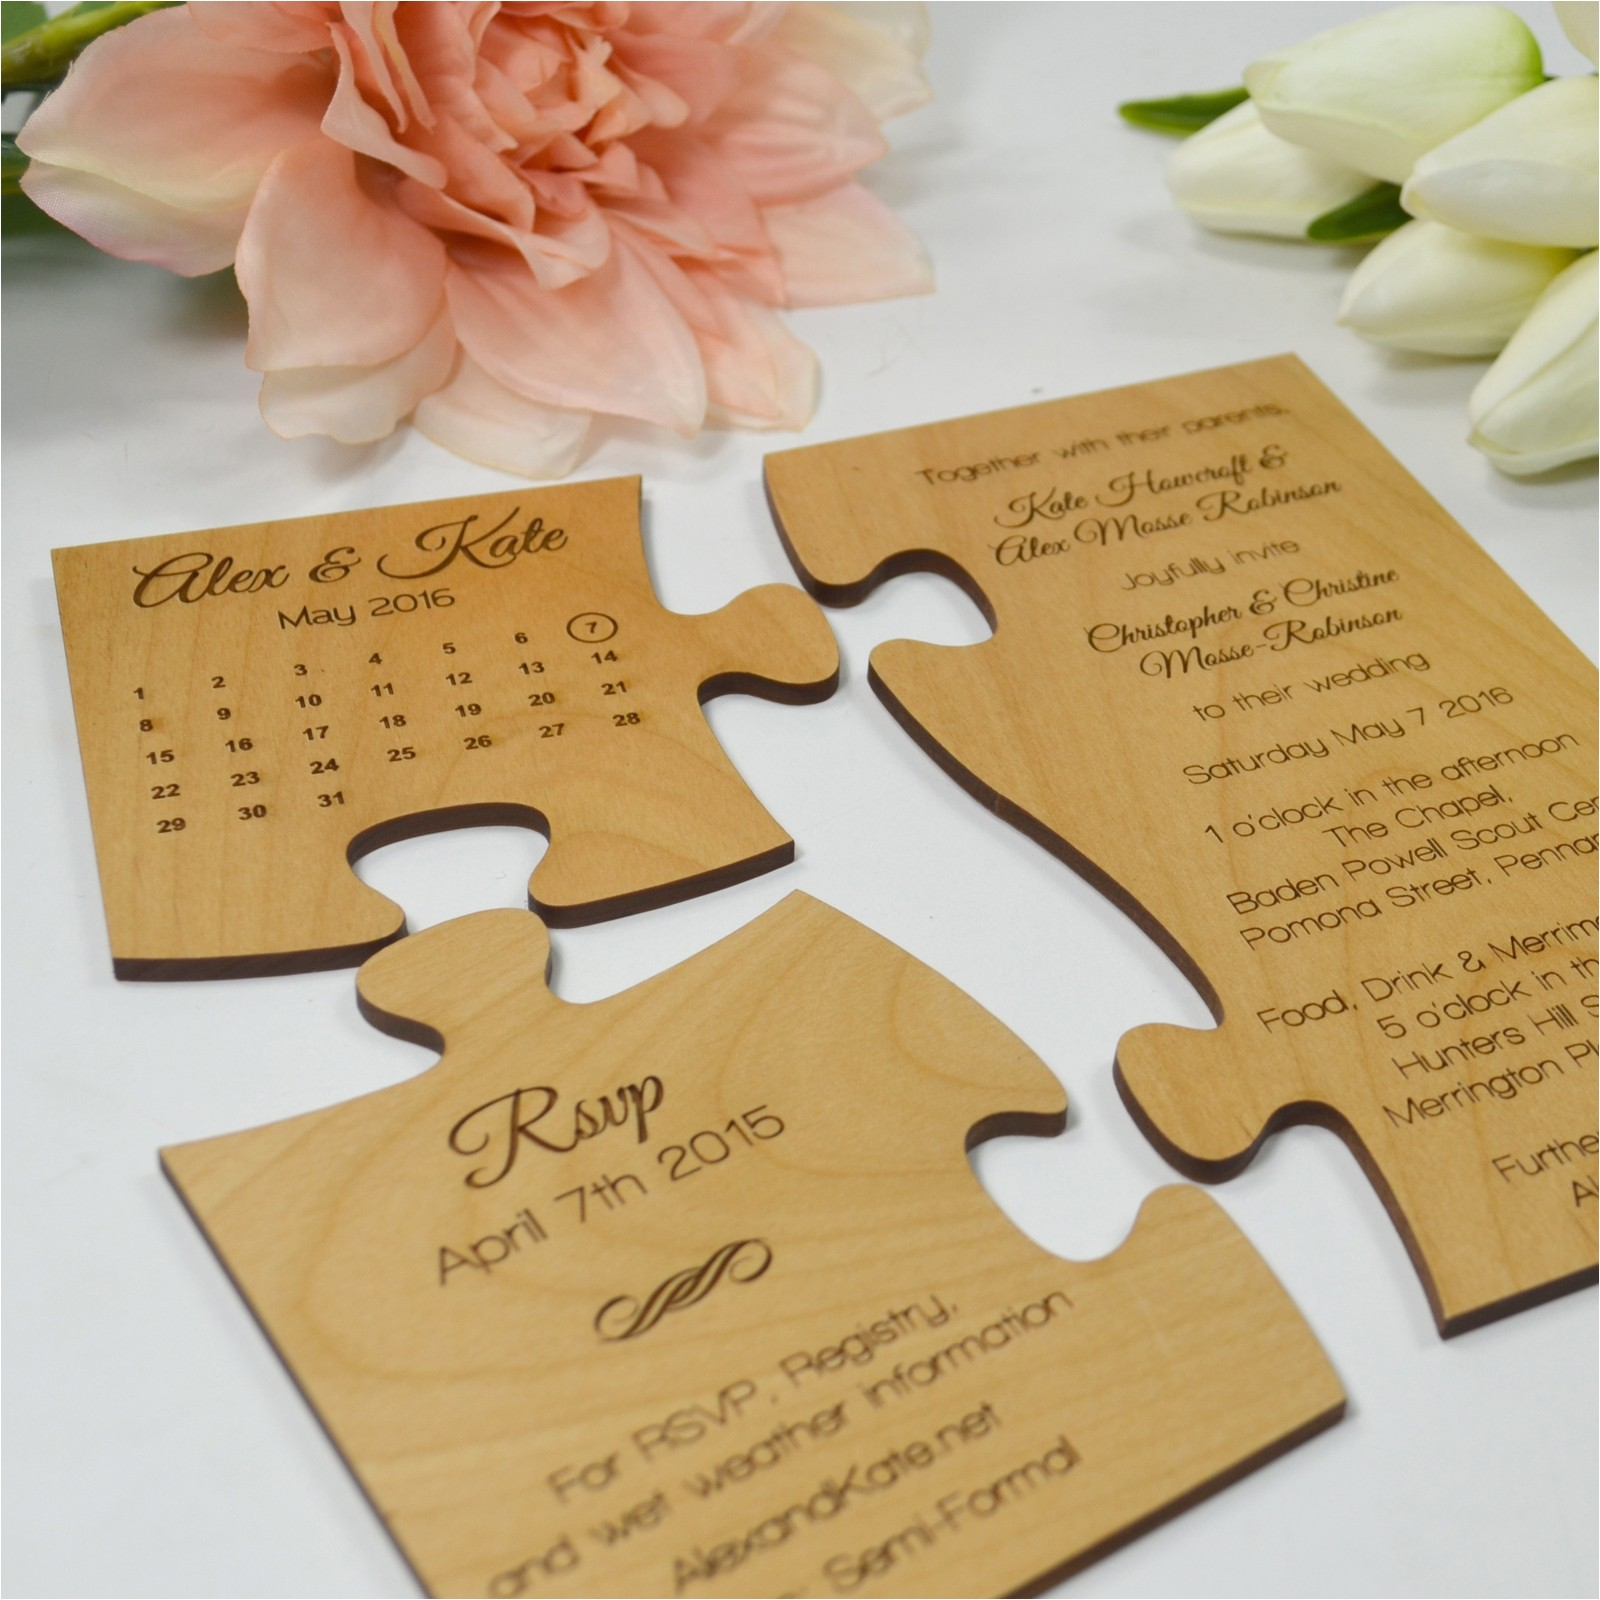 limited edition engraved wooden puzzle invitation and save the date set